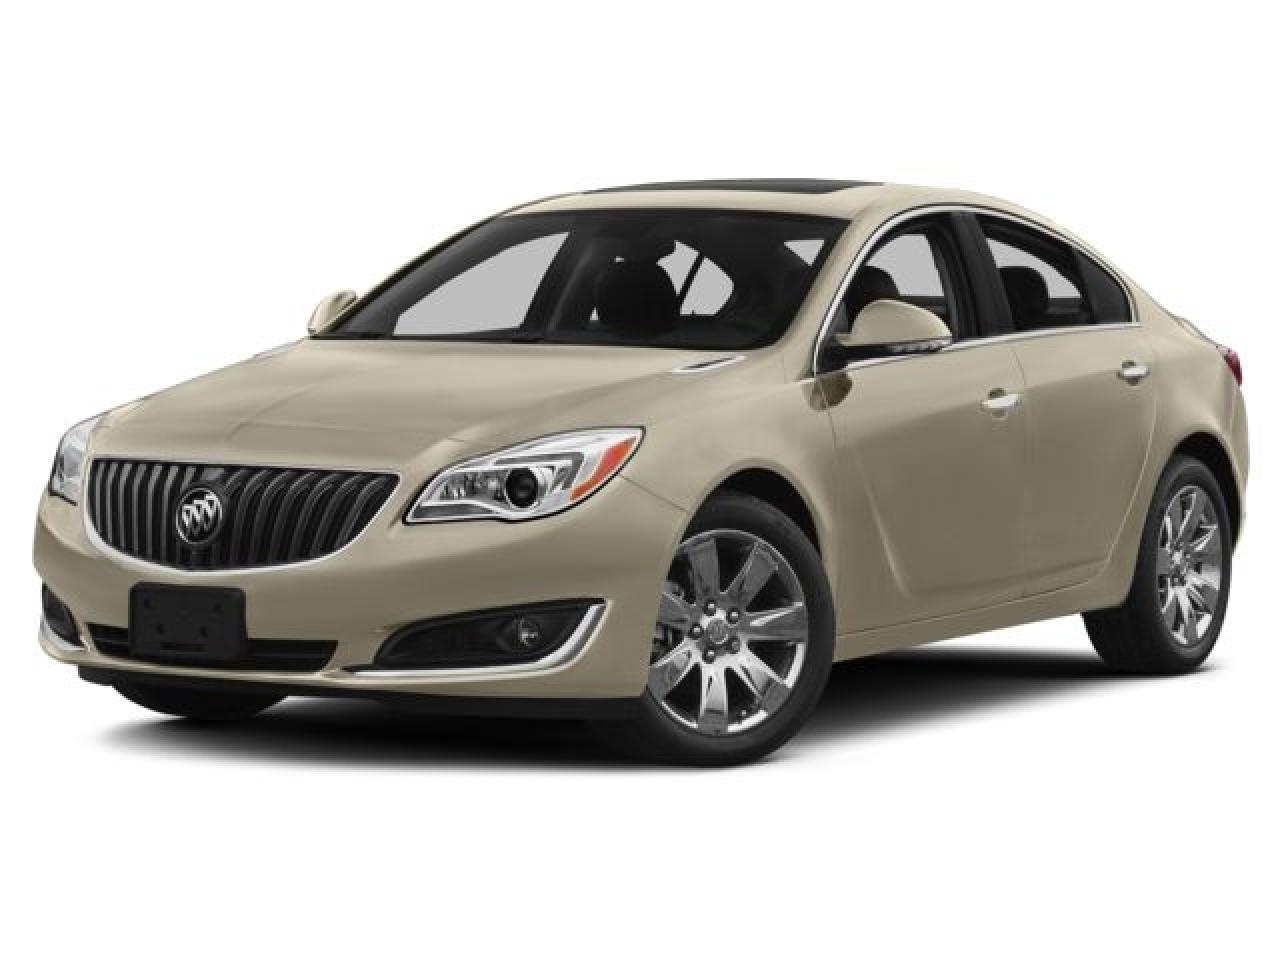 2015 Buick Regal - Information and photos - ZombieDrive